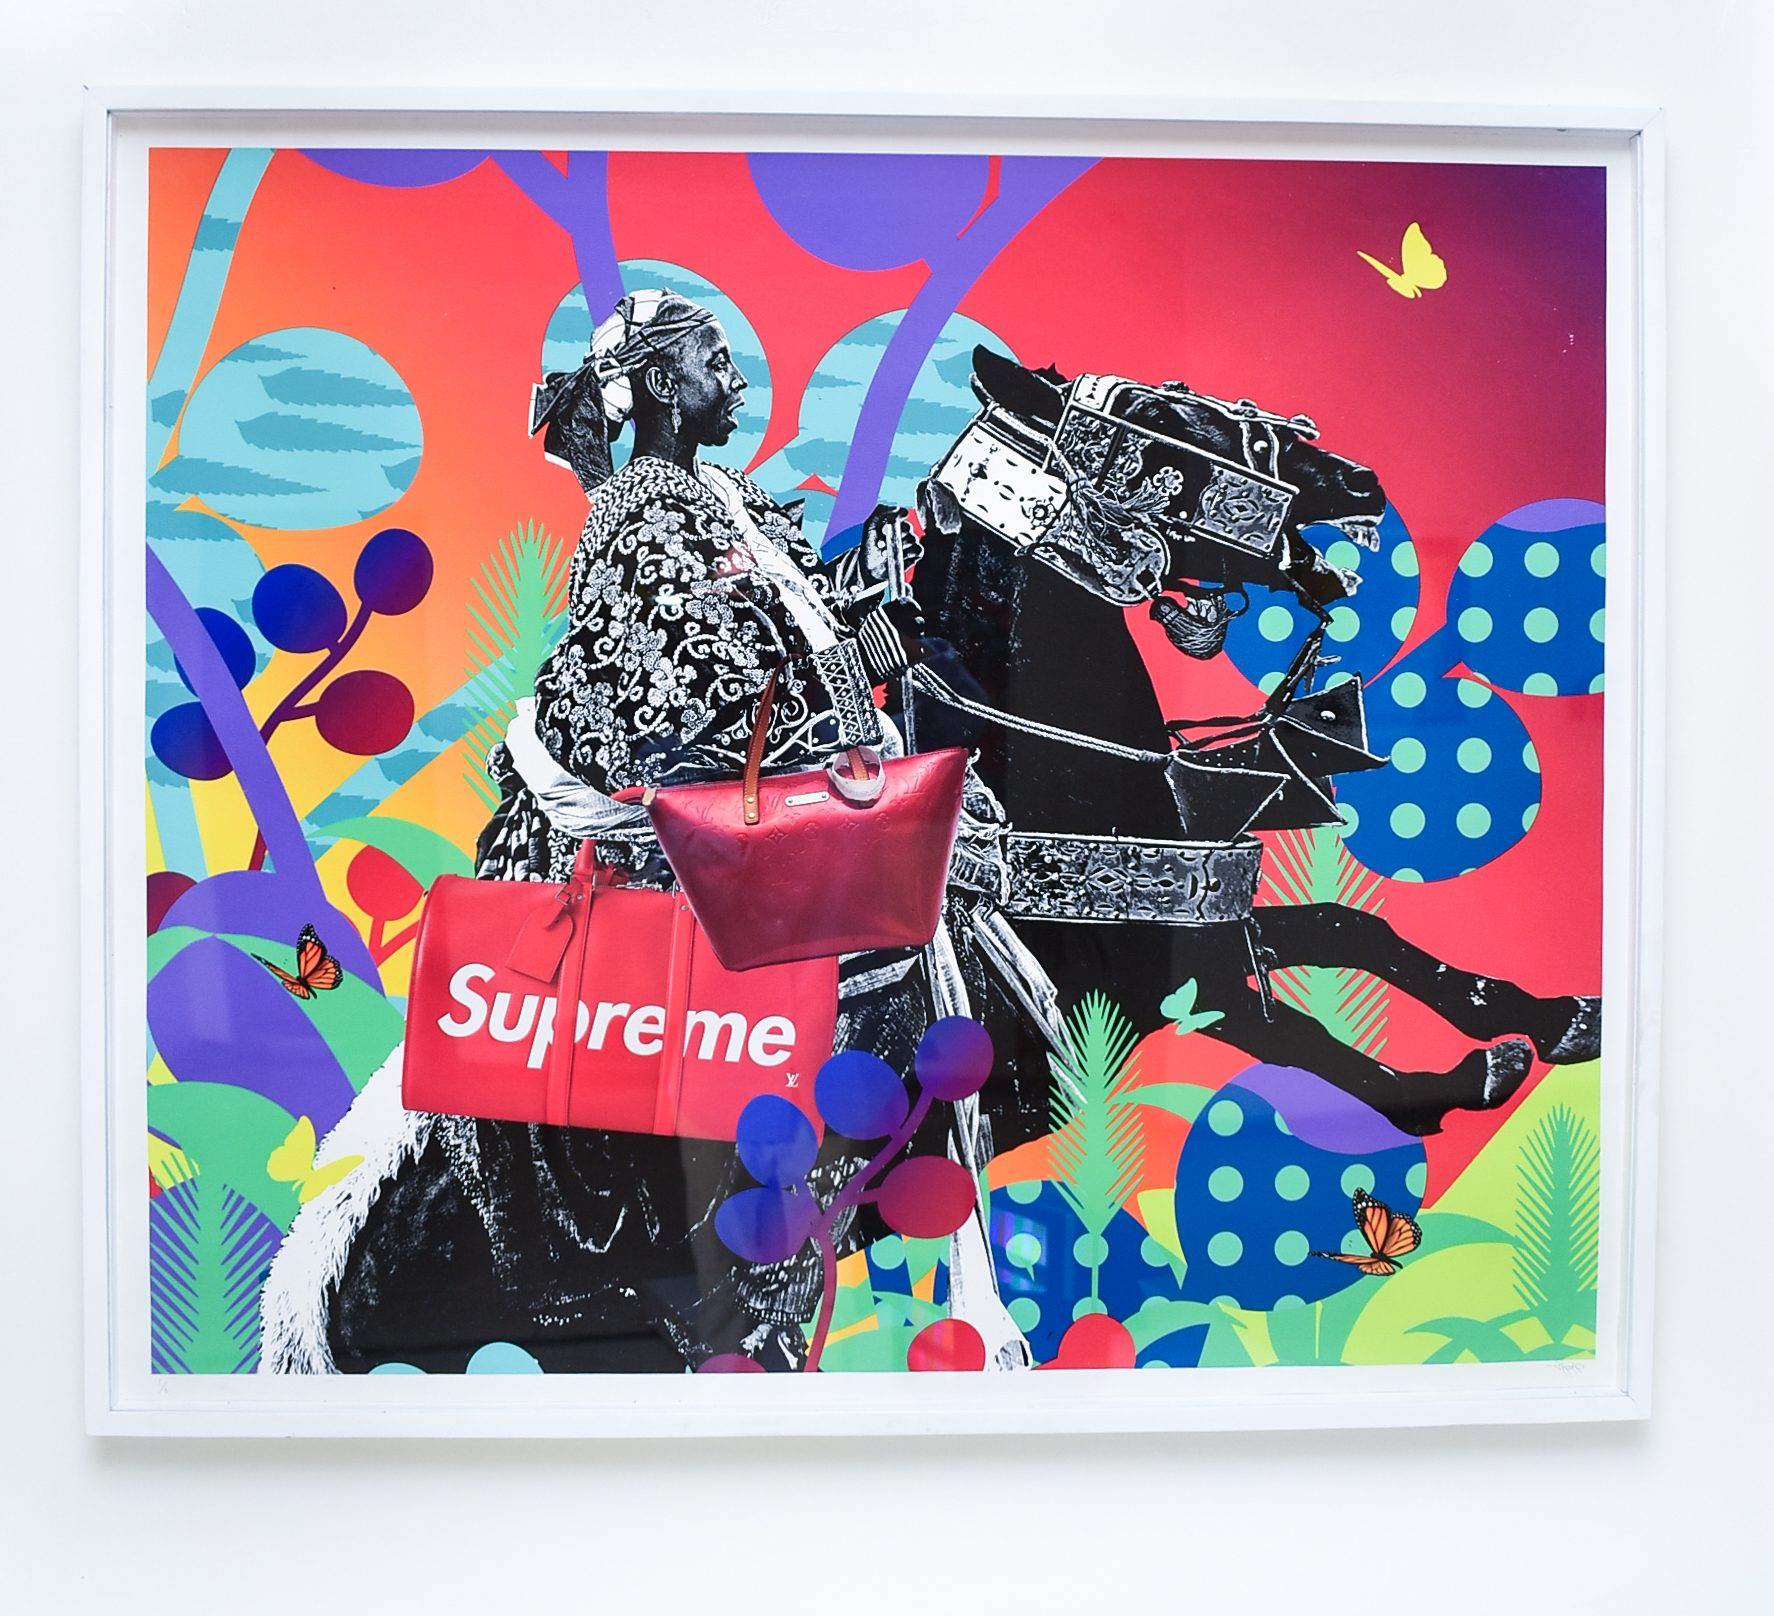 Williams Chechet, Hypebeast, 2020, archival glycee on paper. Courtesy of Retro Africa and the artist